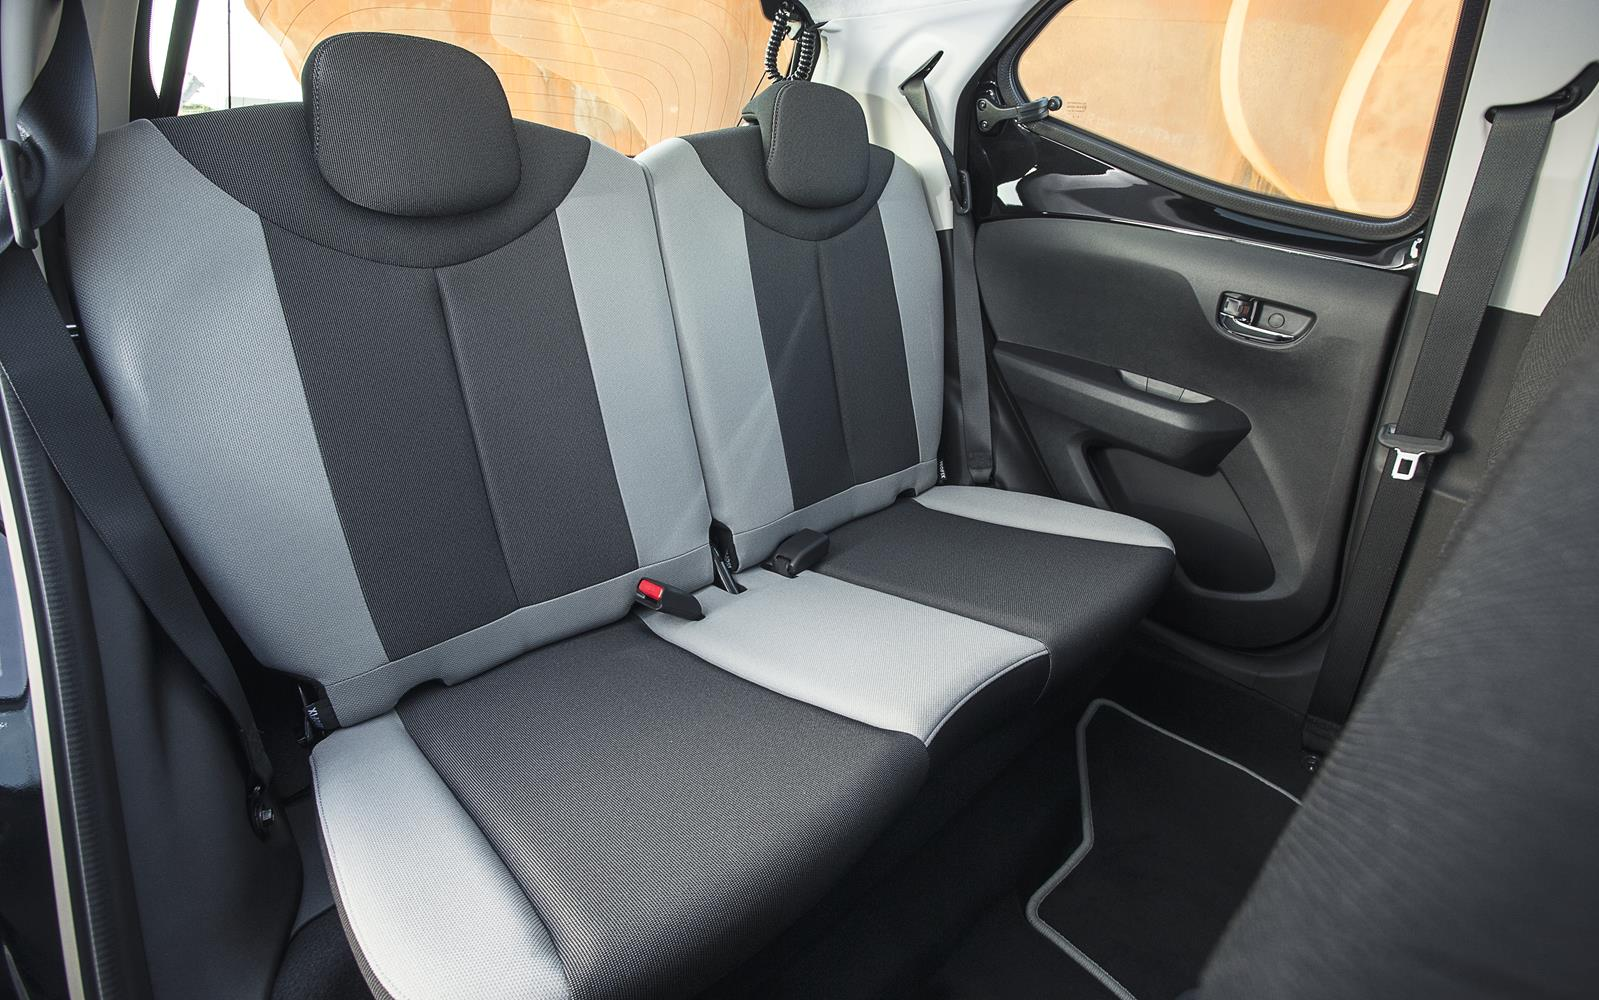 Toyota Aygo 2014 Rear Seats Frontseatdriver Co Uk Front